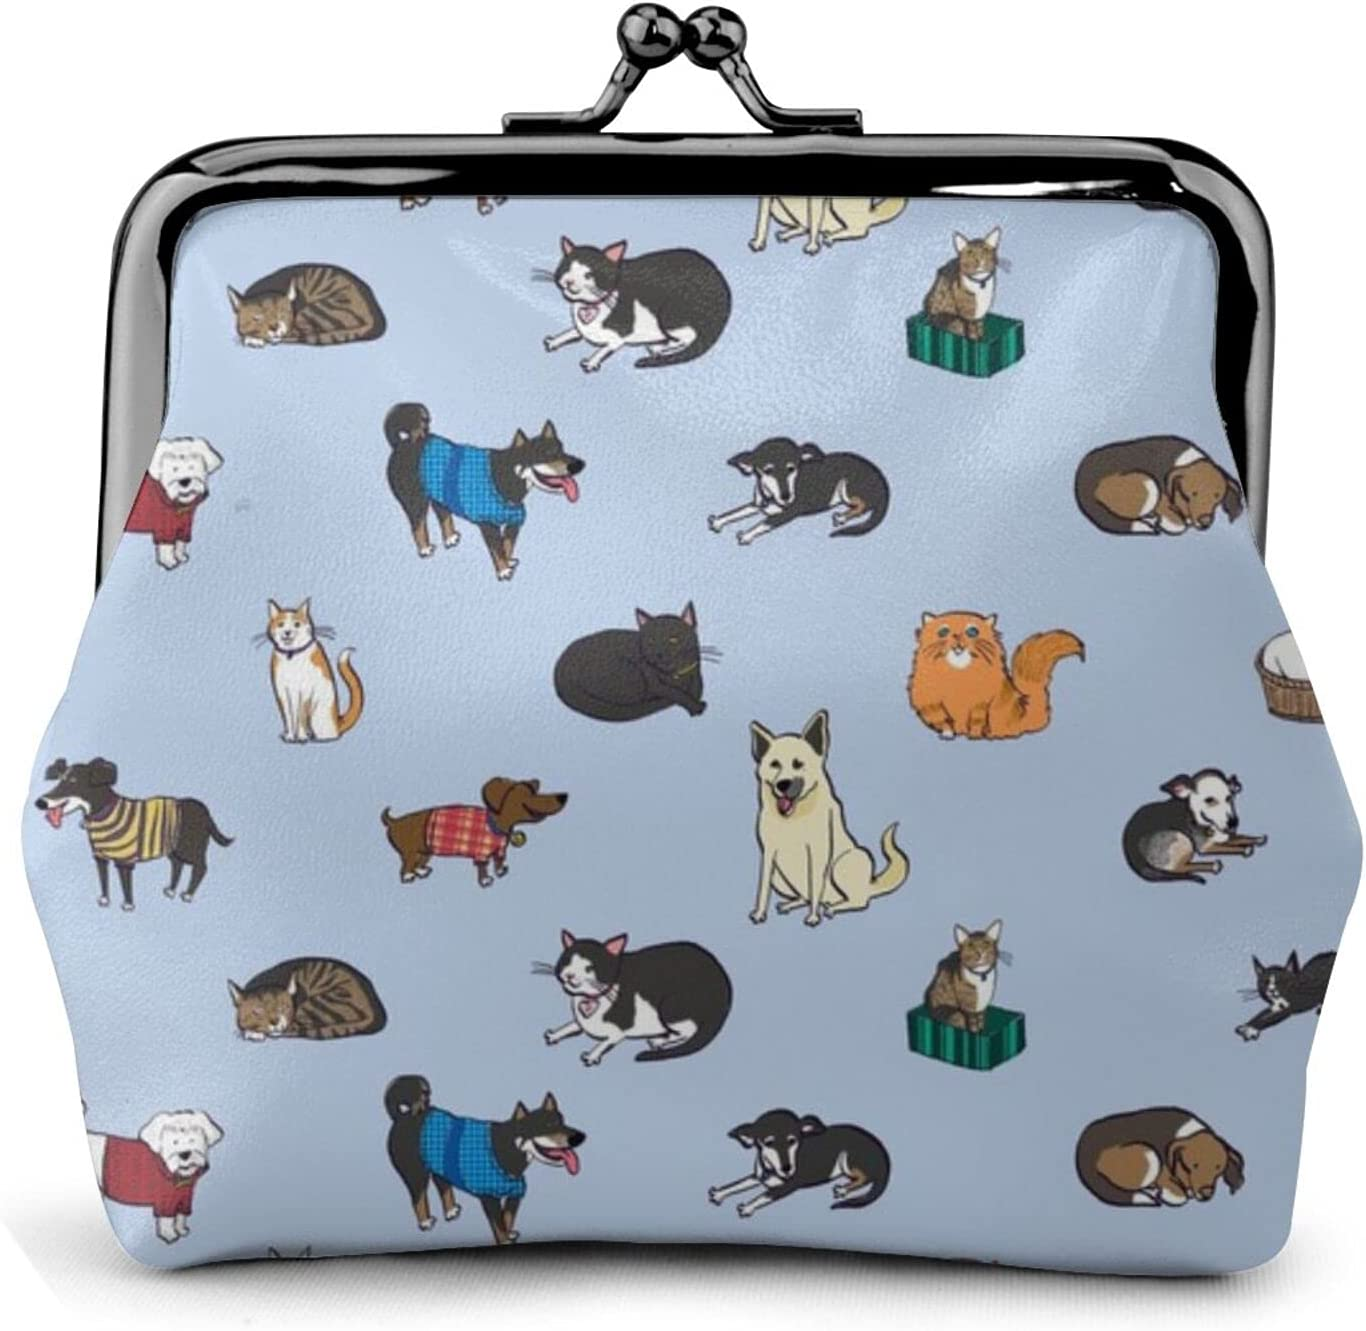 Cats And Dogs 1423 Coin Purse Retro Money Pouch with Kiss-lock Buckle Small Wallet for Women and Girls